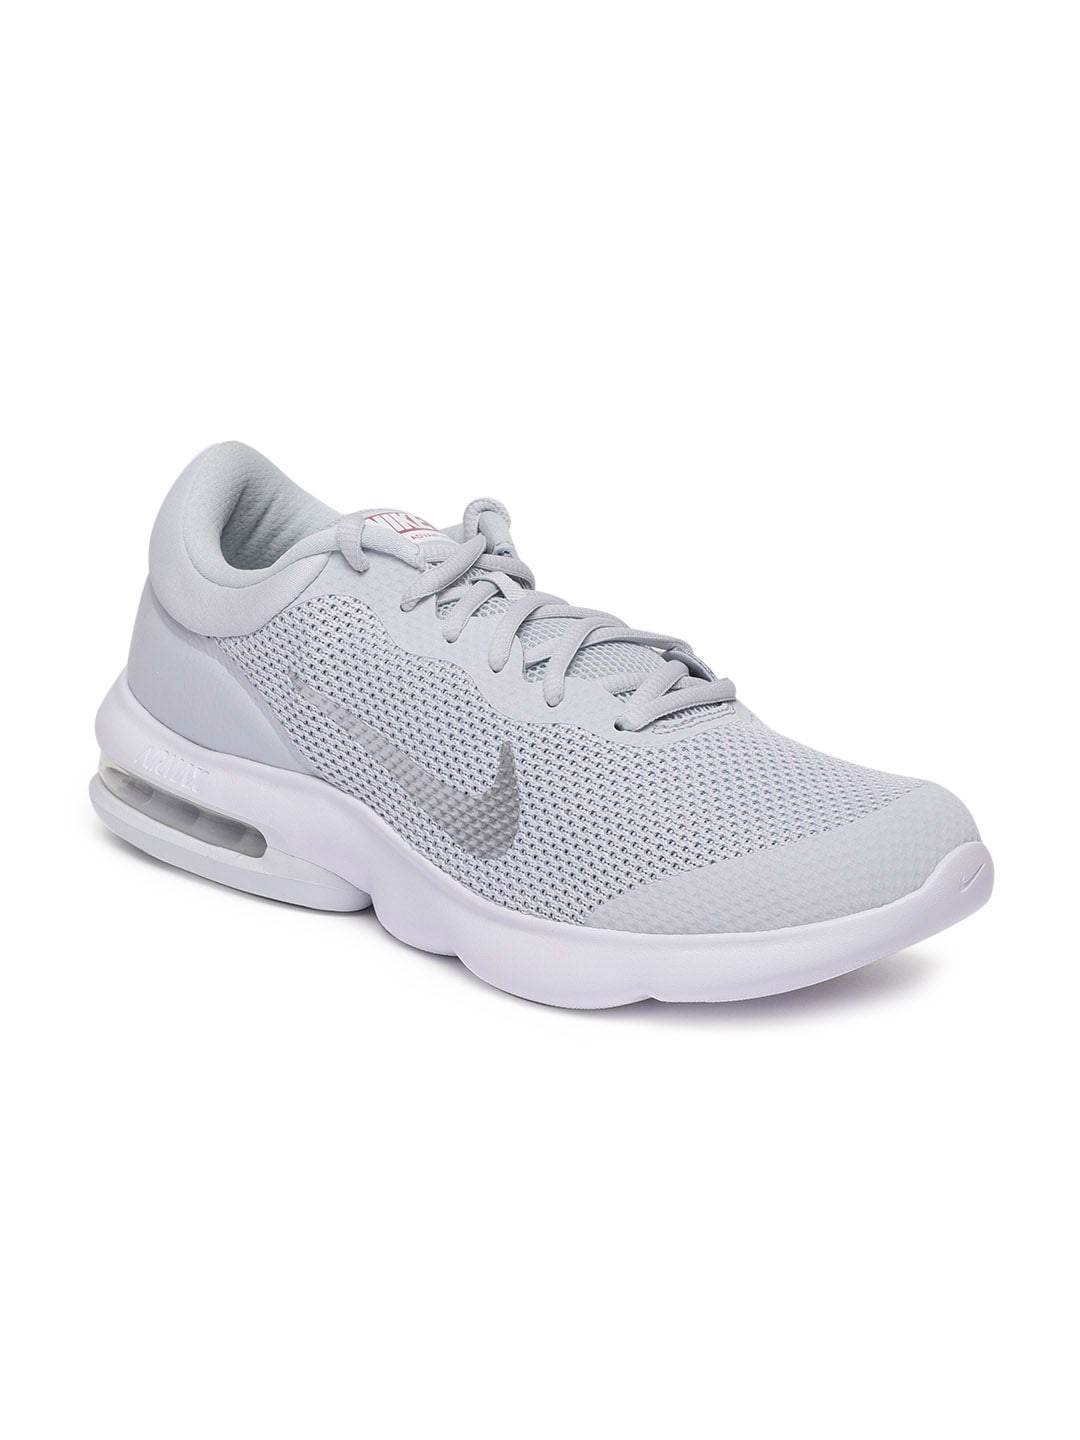 detailed look a6ca2 b6c6e Nike Casual Shoes   Buy Nike Casual Shoes for Men   Women Online in India